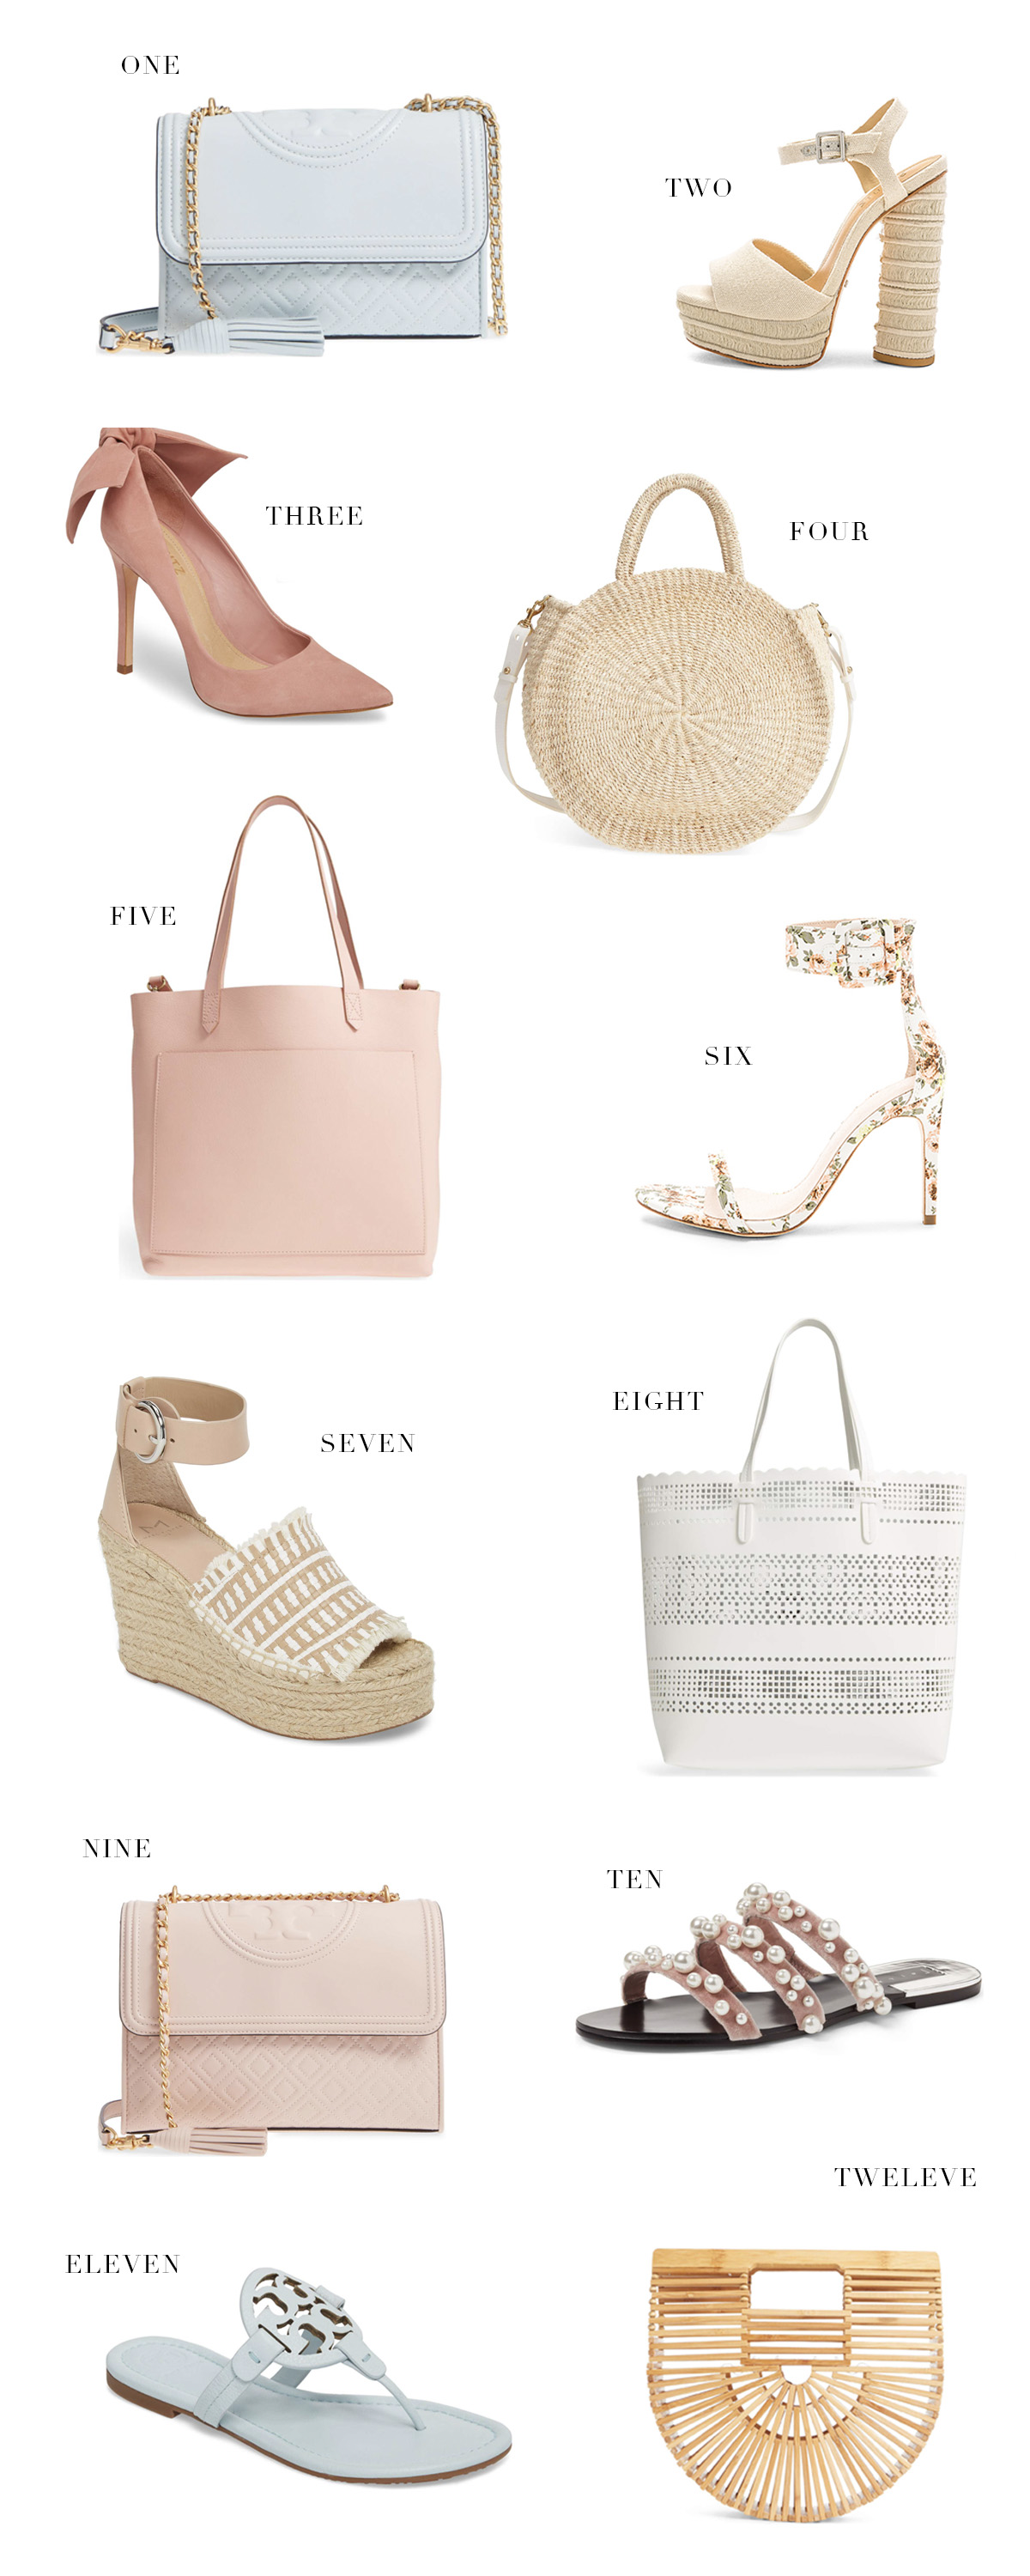 b7dbadc927e9 My Top Picks for Spring Bags and Shoes... - Rach Parcell